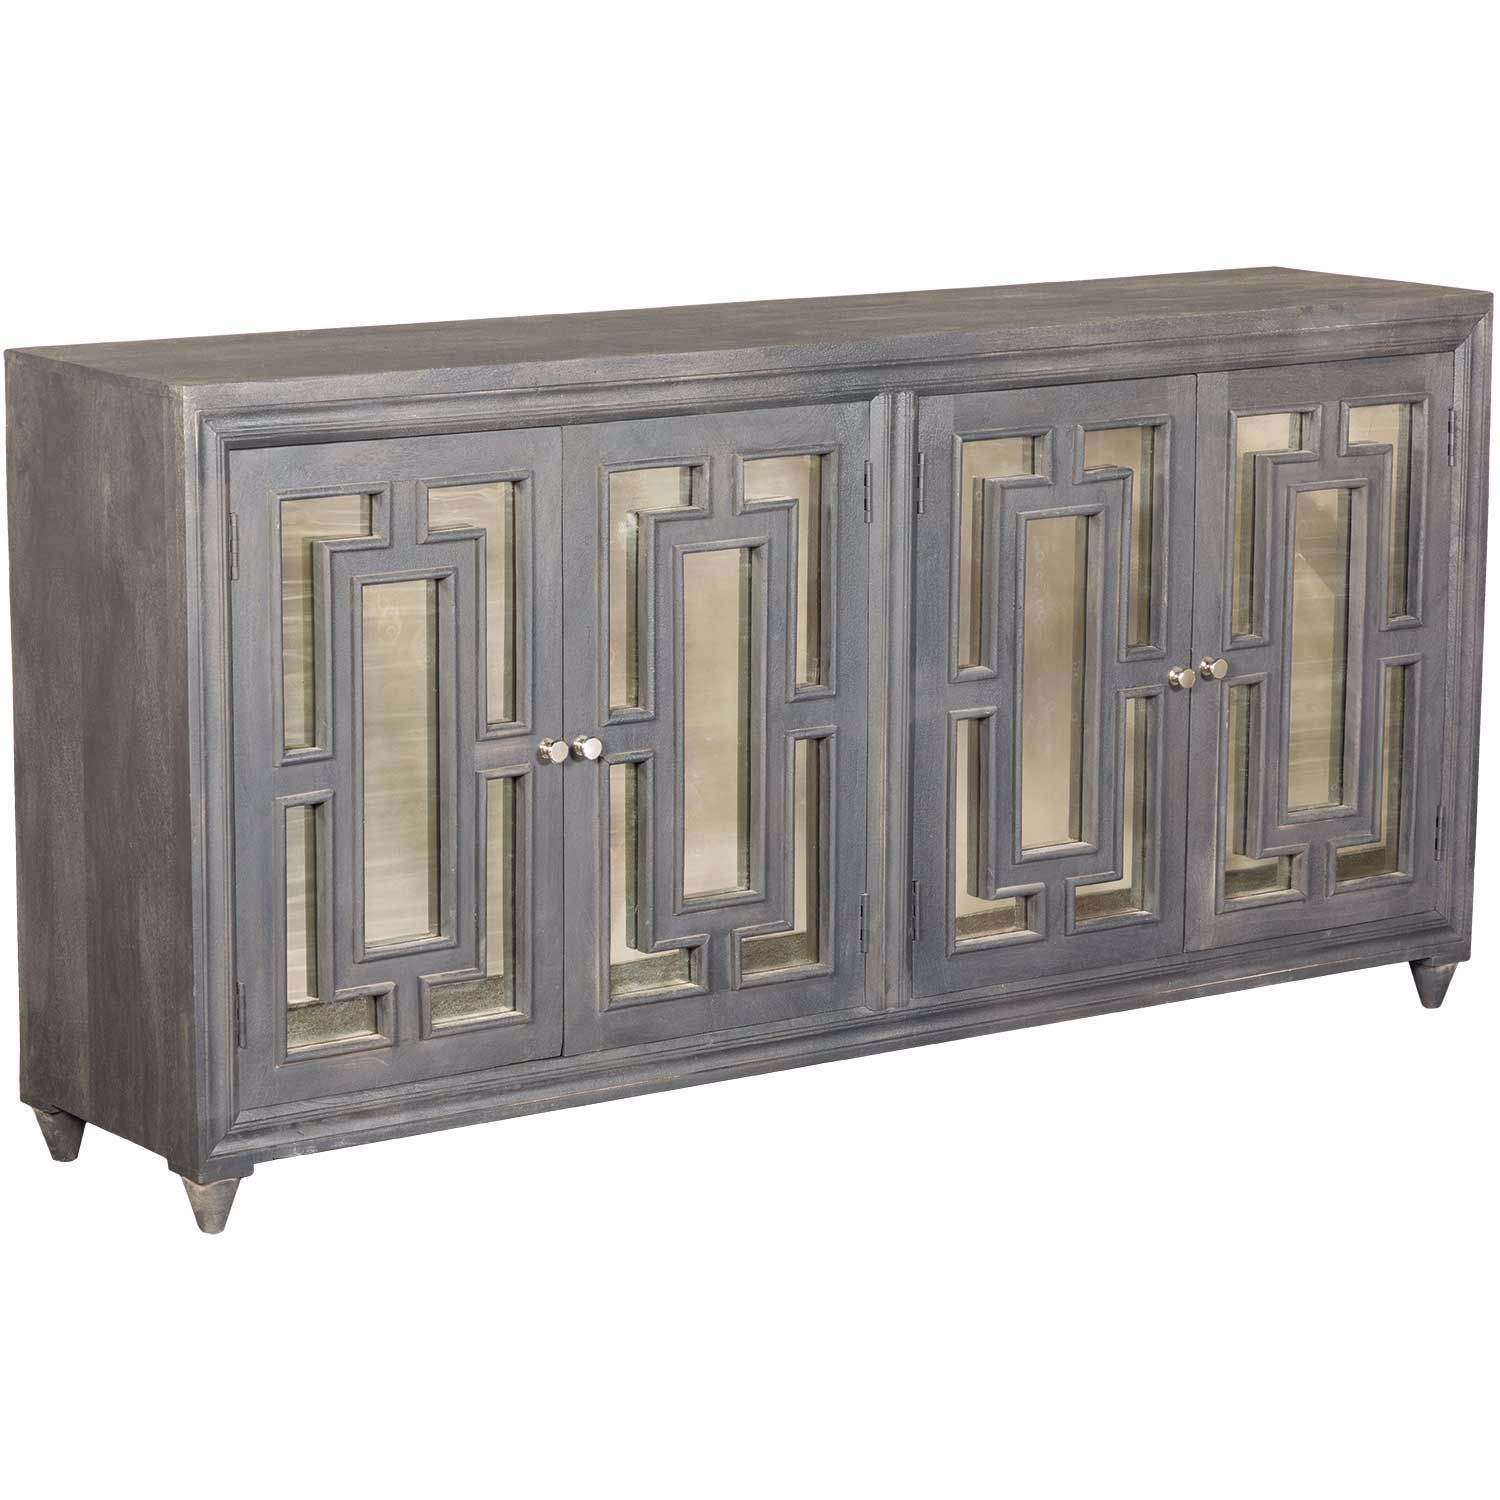 4 Door Sideboard – Vascular Throughout Steinhatchee Reclaimed Pine 4 Door Sideboards (View 4 of 30)